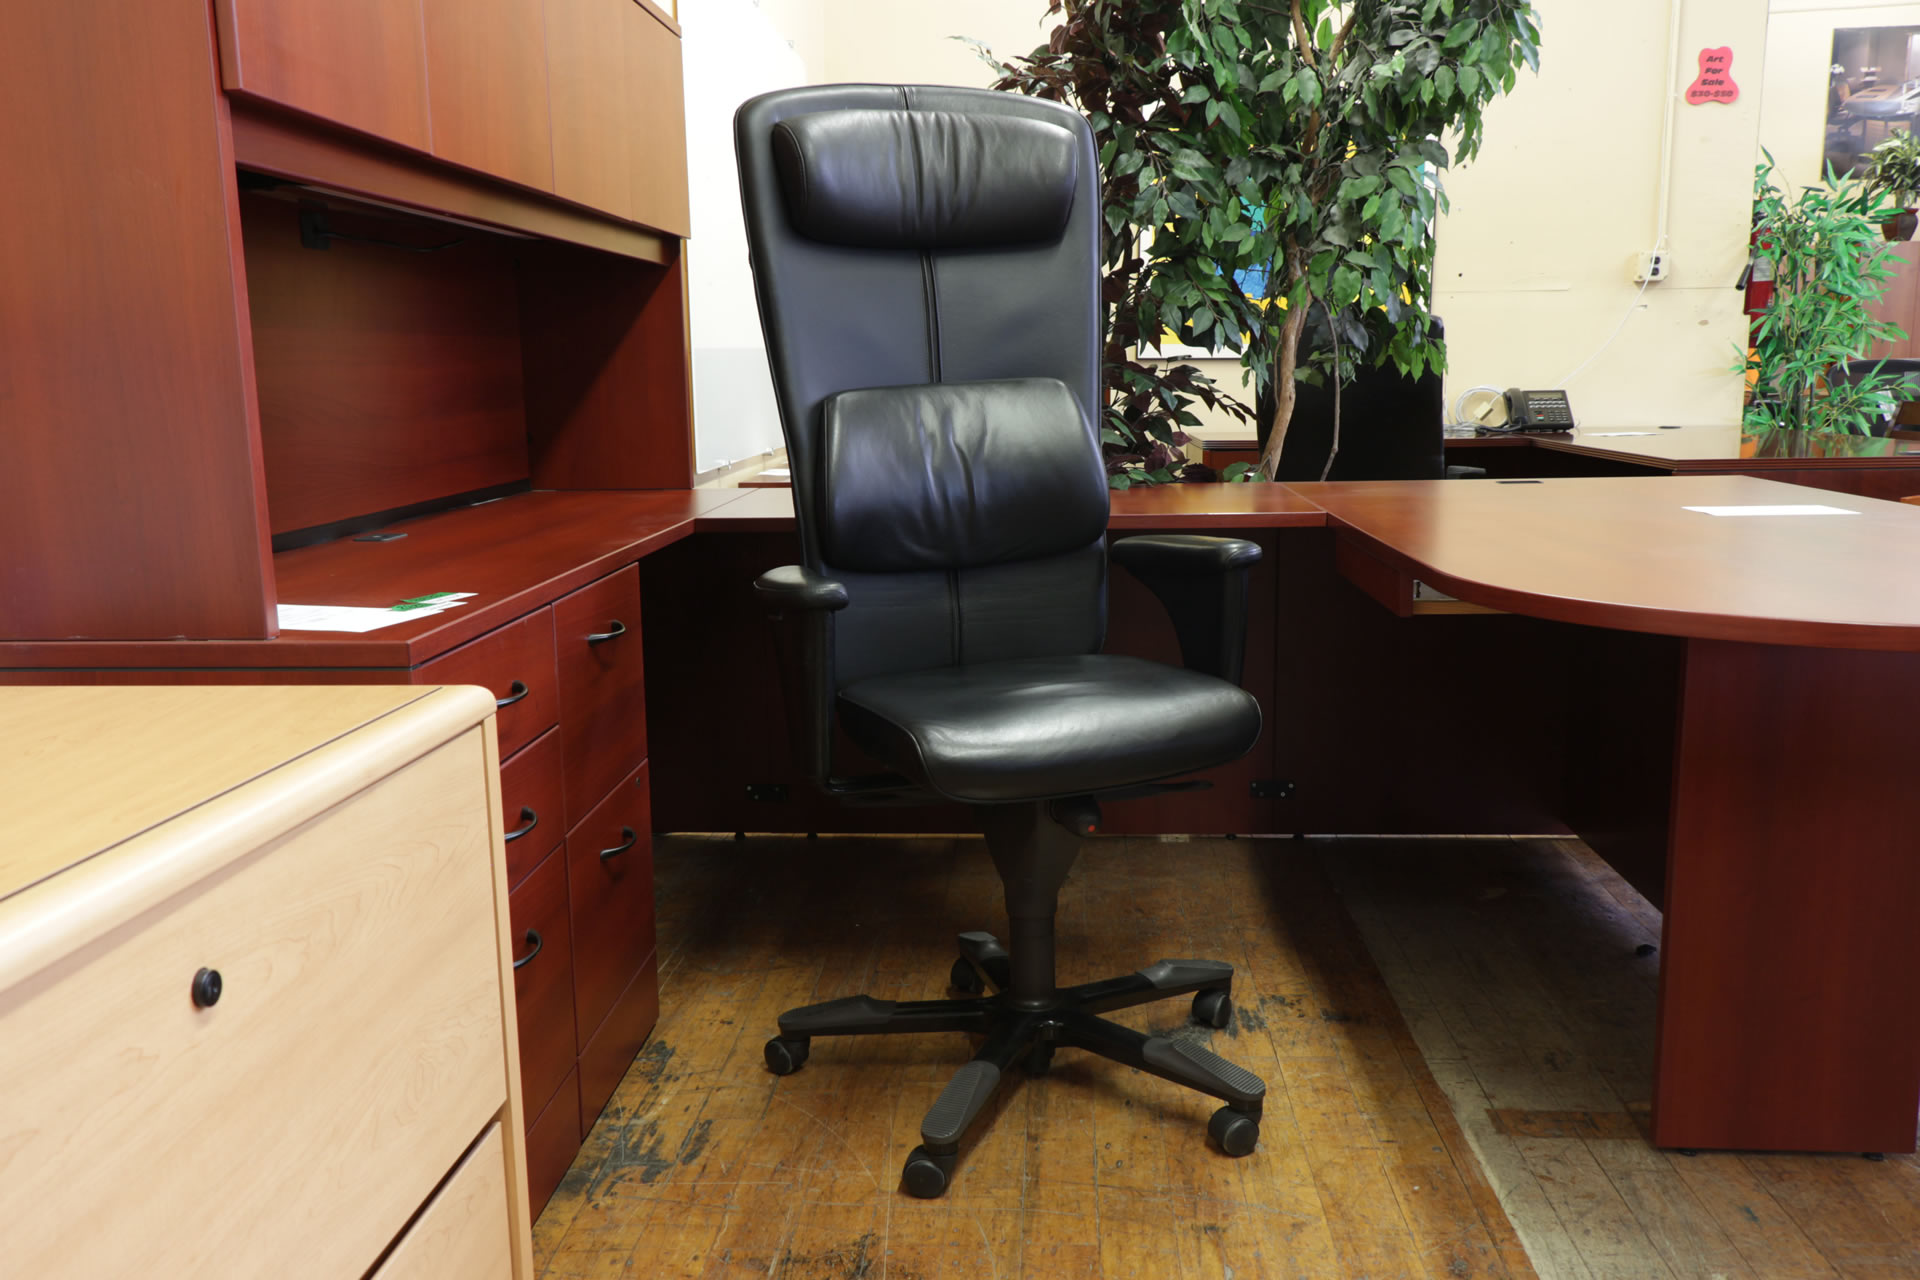 peartreeofficefurniture_peartreeofficefurniture_peartreeofficefurniture_img_8980.jpg